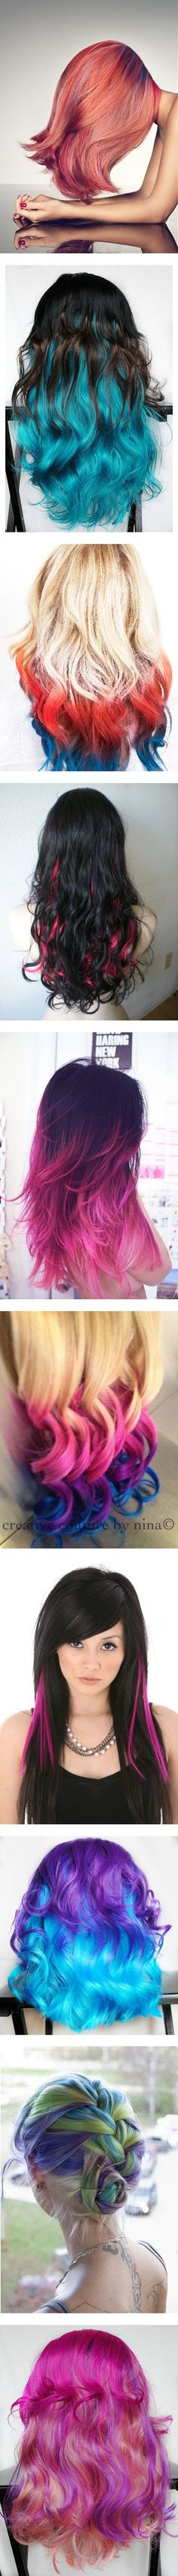 color ideas for your hair!